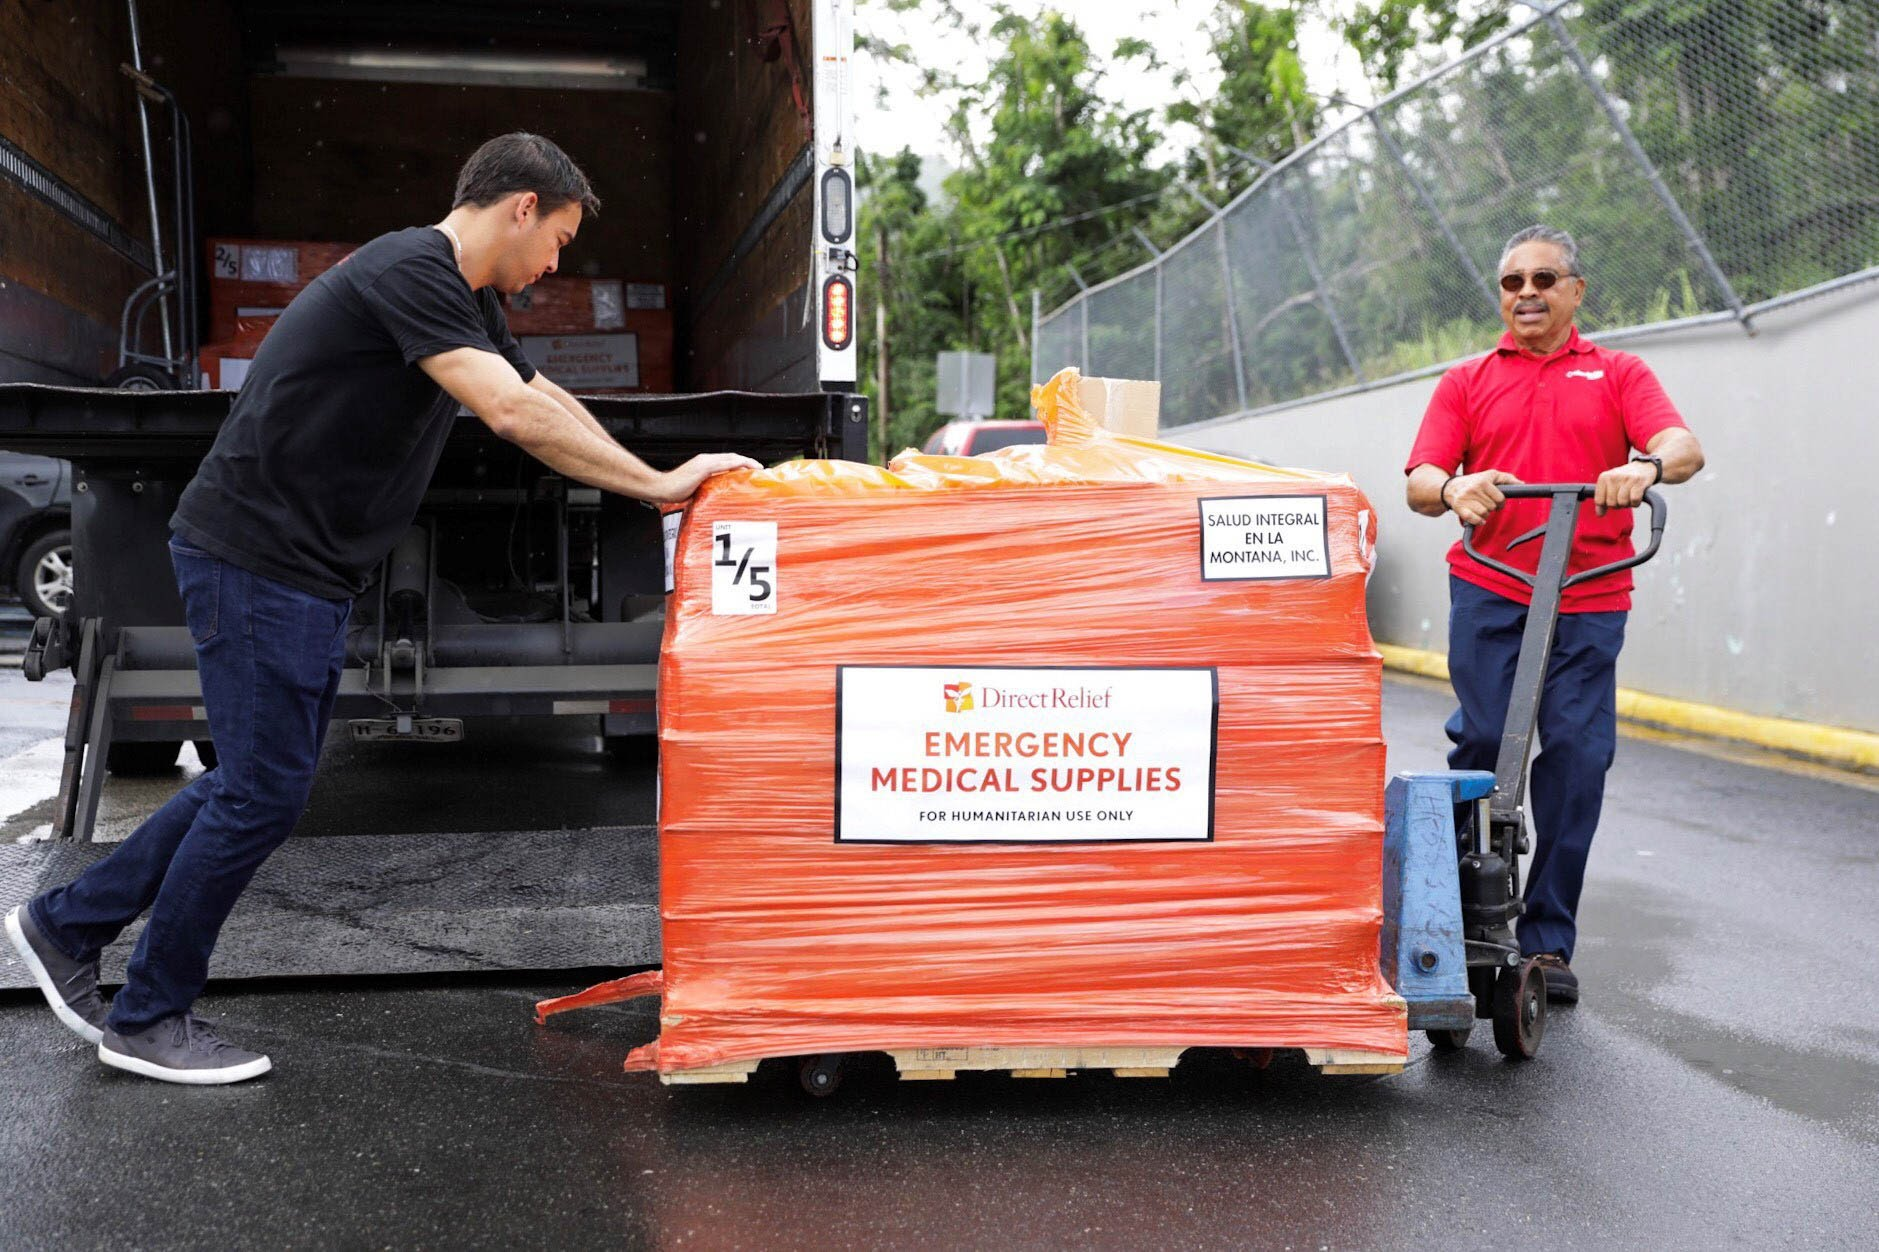 79,365 lbs of medications, nutritionals and medical supplies from Direct Relief arrived at the Luis Muñoz Marín International Airport in San Juan. The supplies were staged for distributionin San Juan at a warehouse donated by ABF Freight, on Tuesday, Dec. 19. (Photo by Donnie Hedden for Direct Relief)